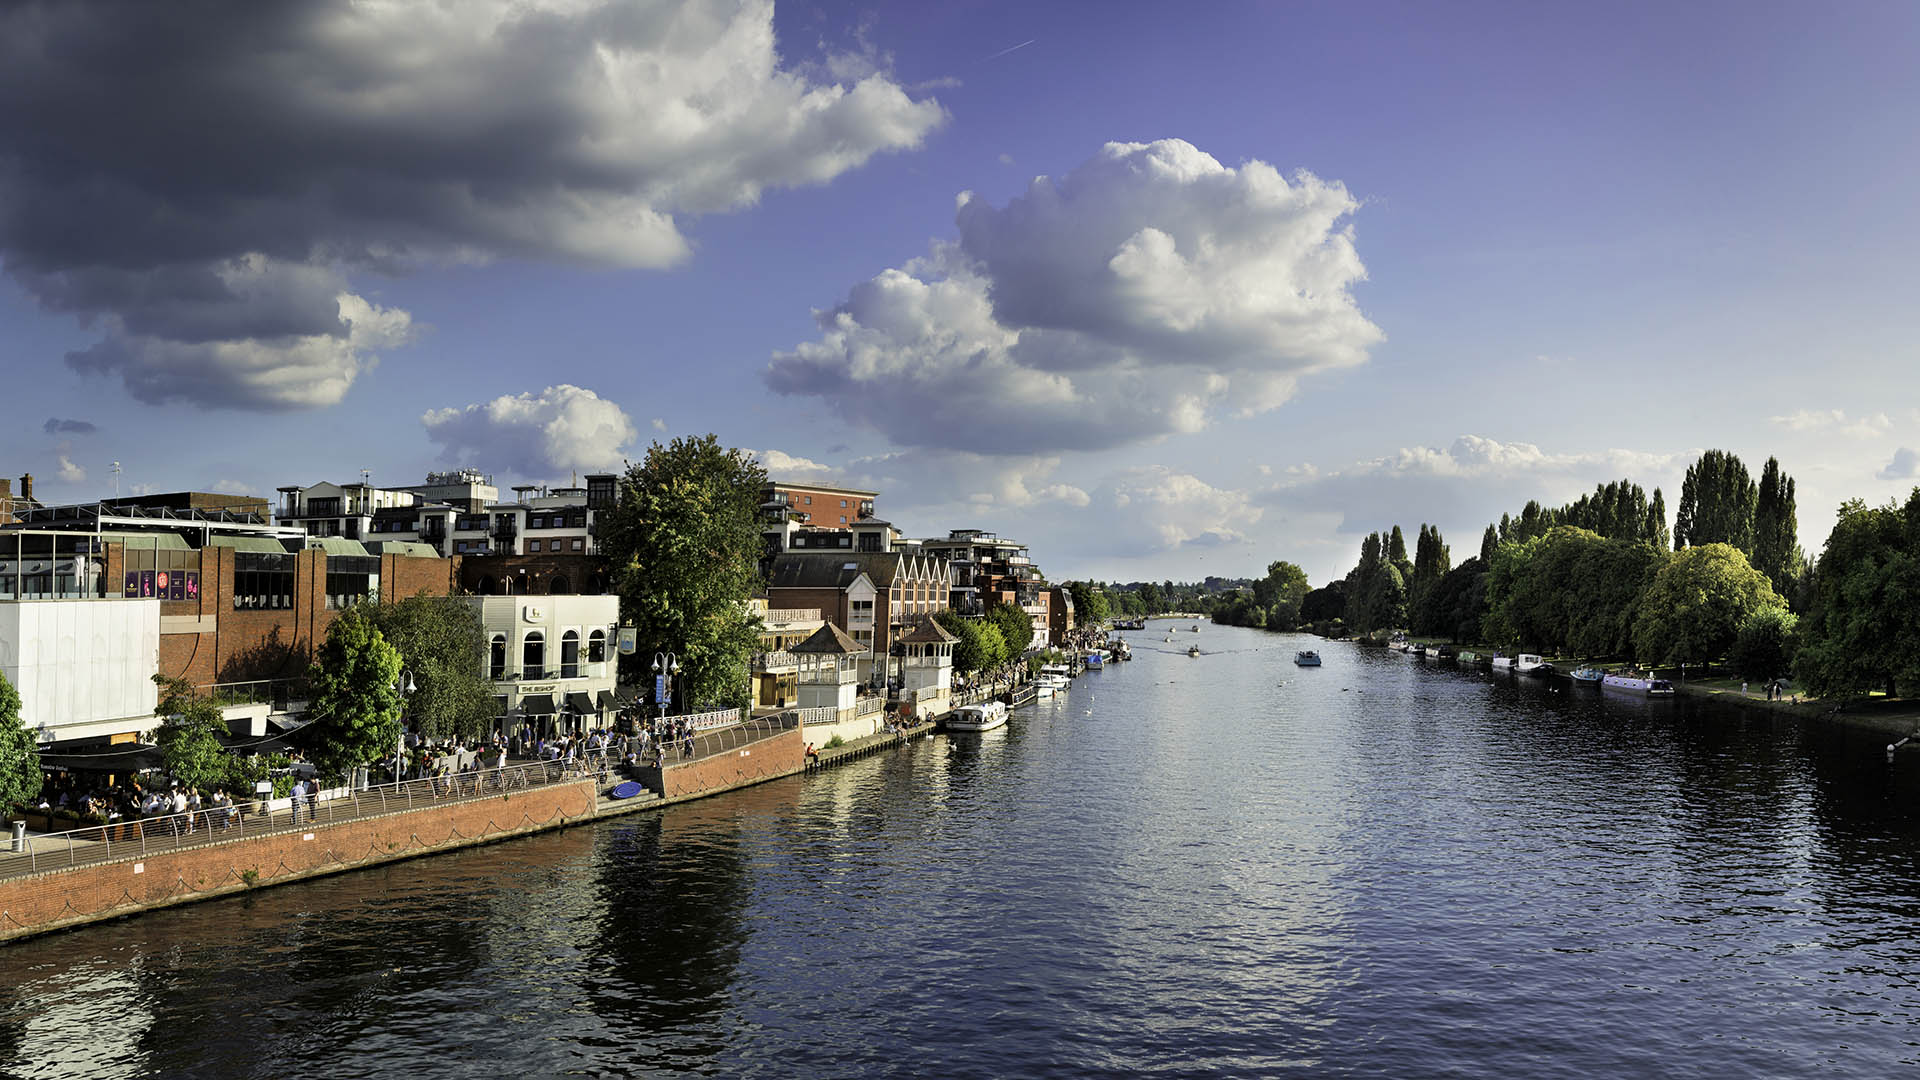 Riverside view of Kingston upon Thames with blue skies and green trees.